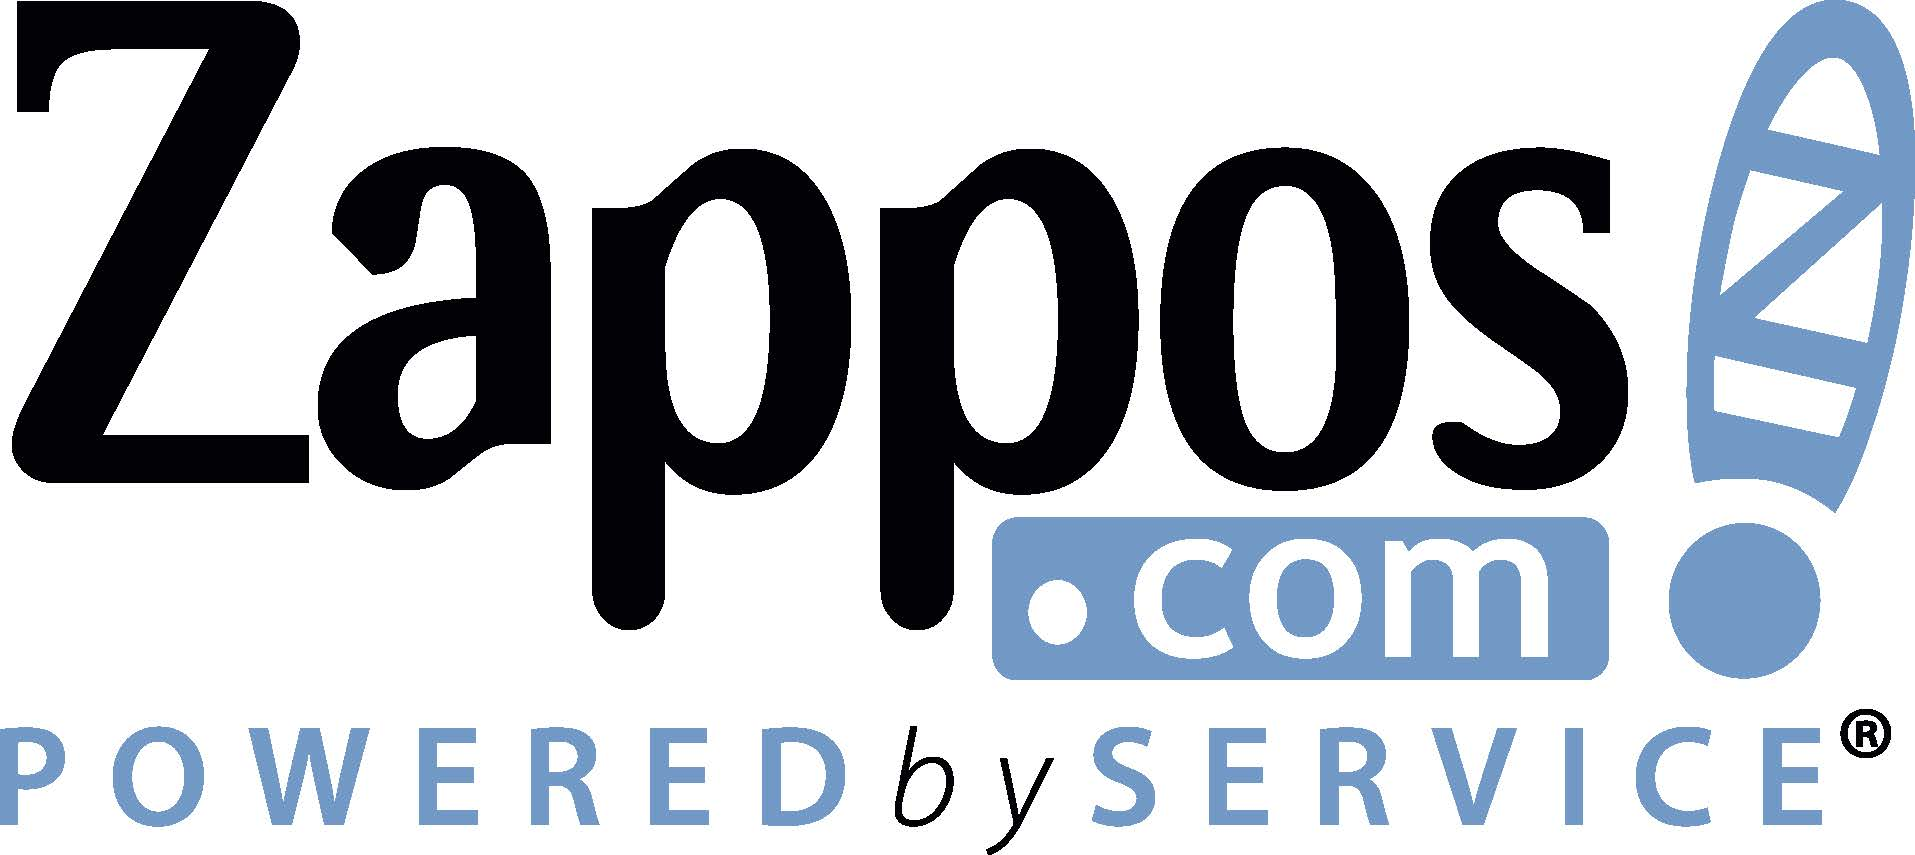 Zappos_Powered_by_Service_Official_logo.jpg